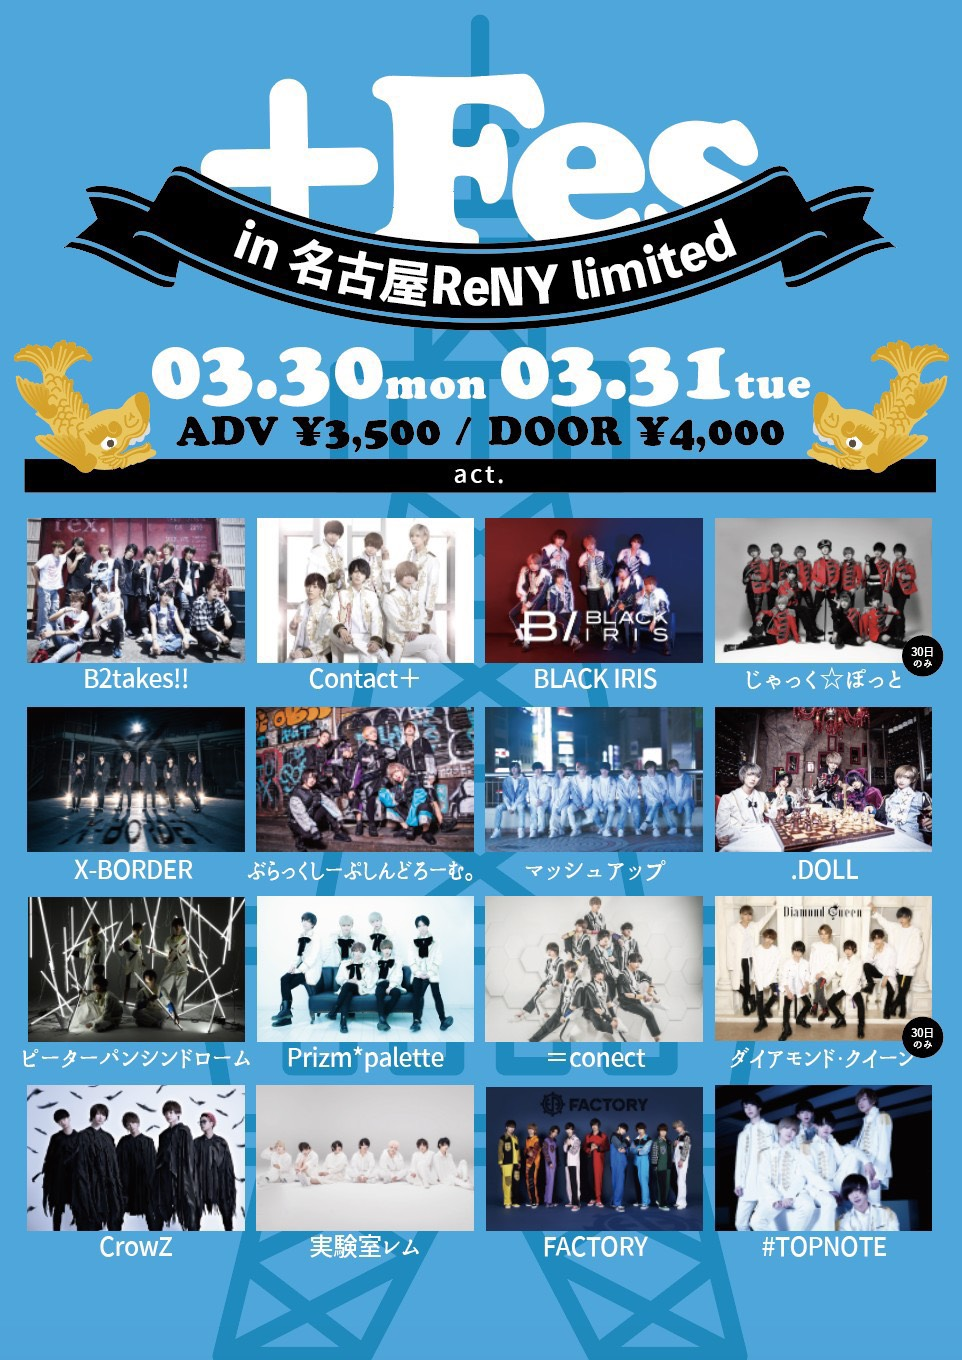 +Fes in名古屋ReNY limited